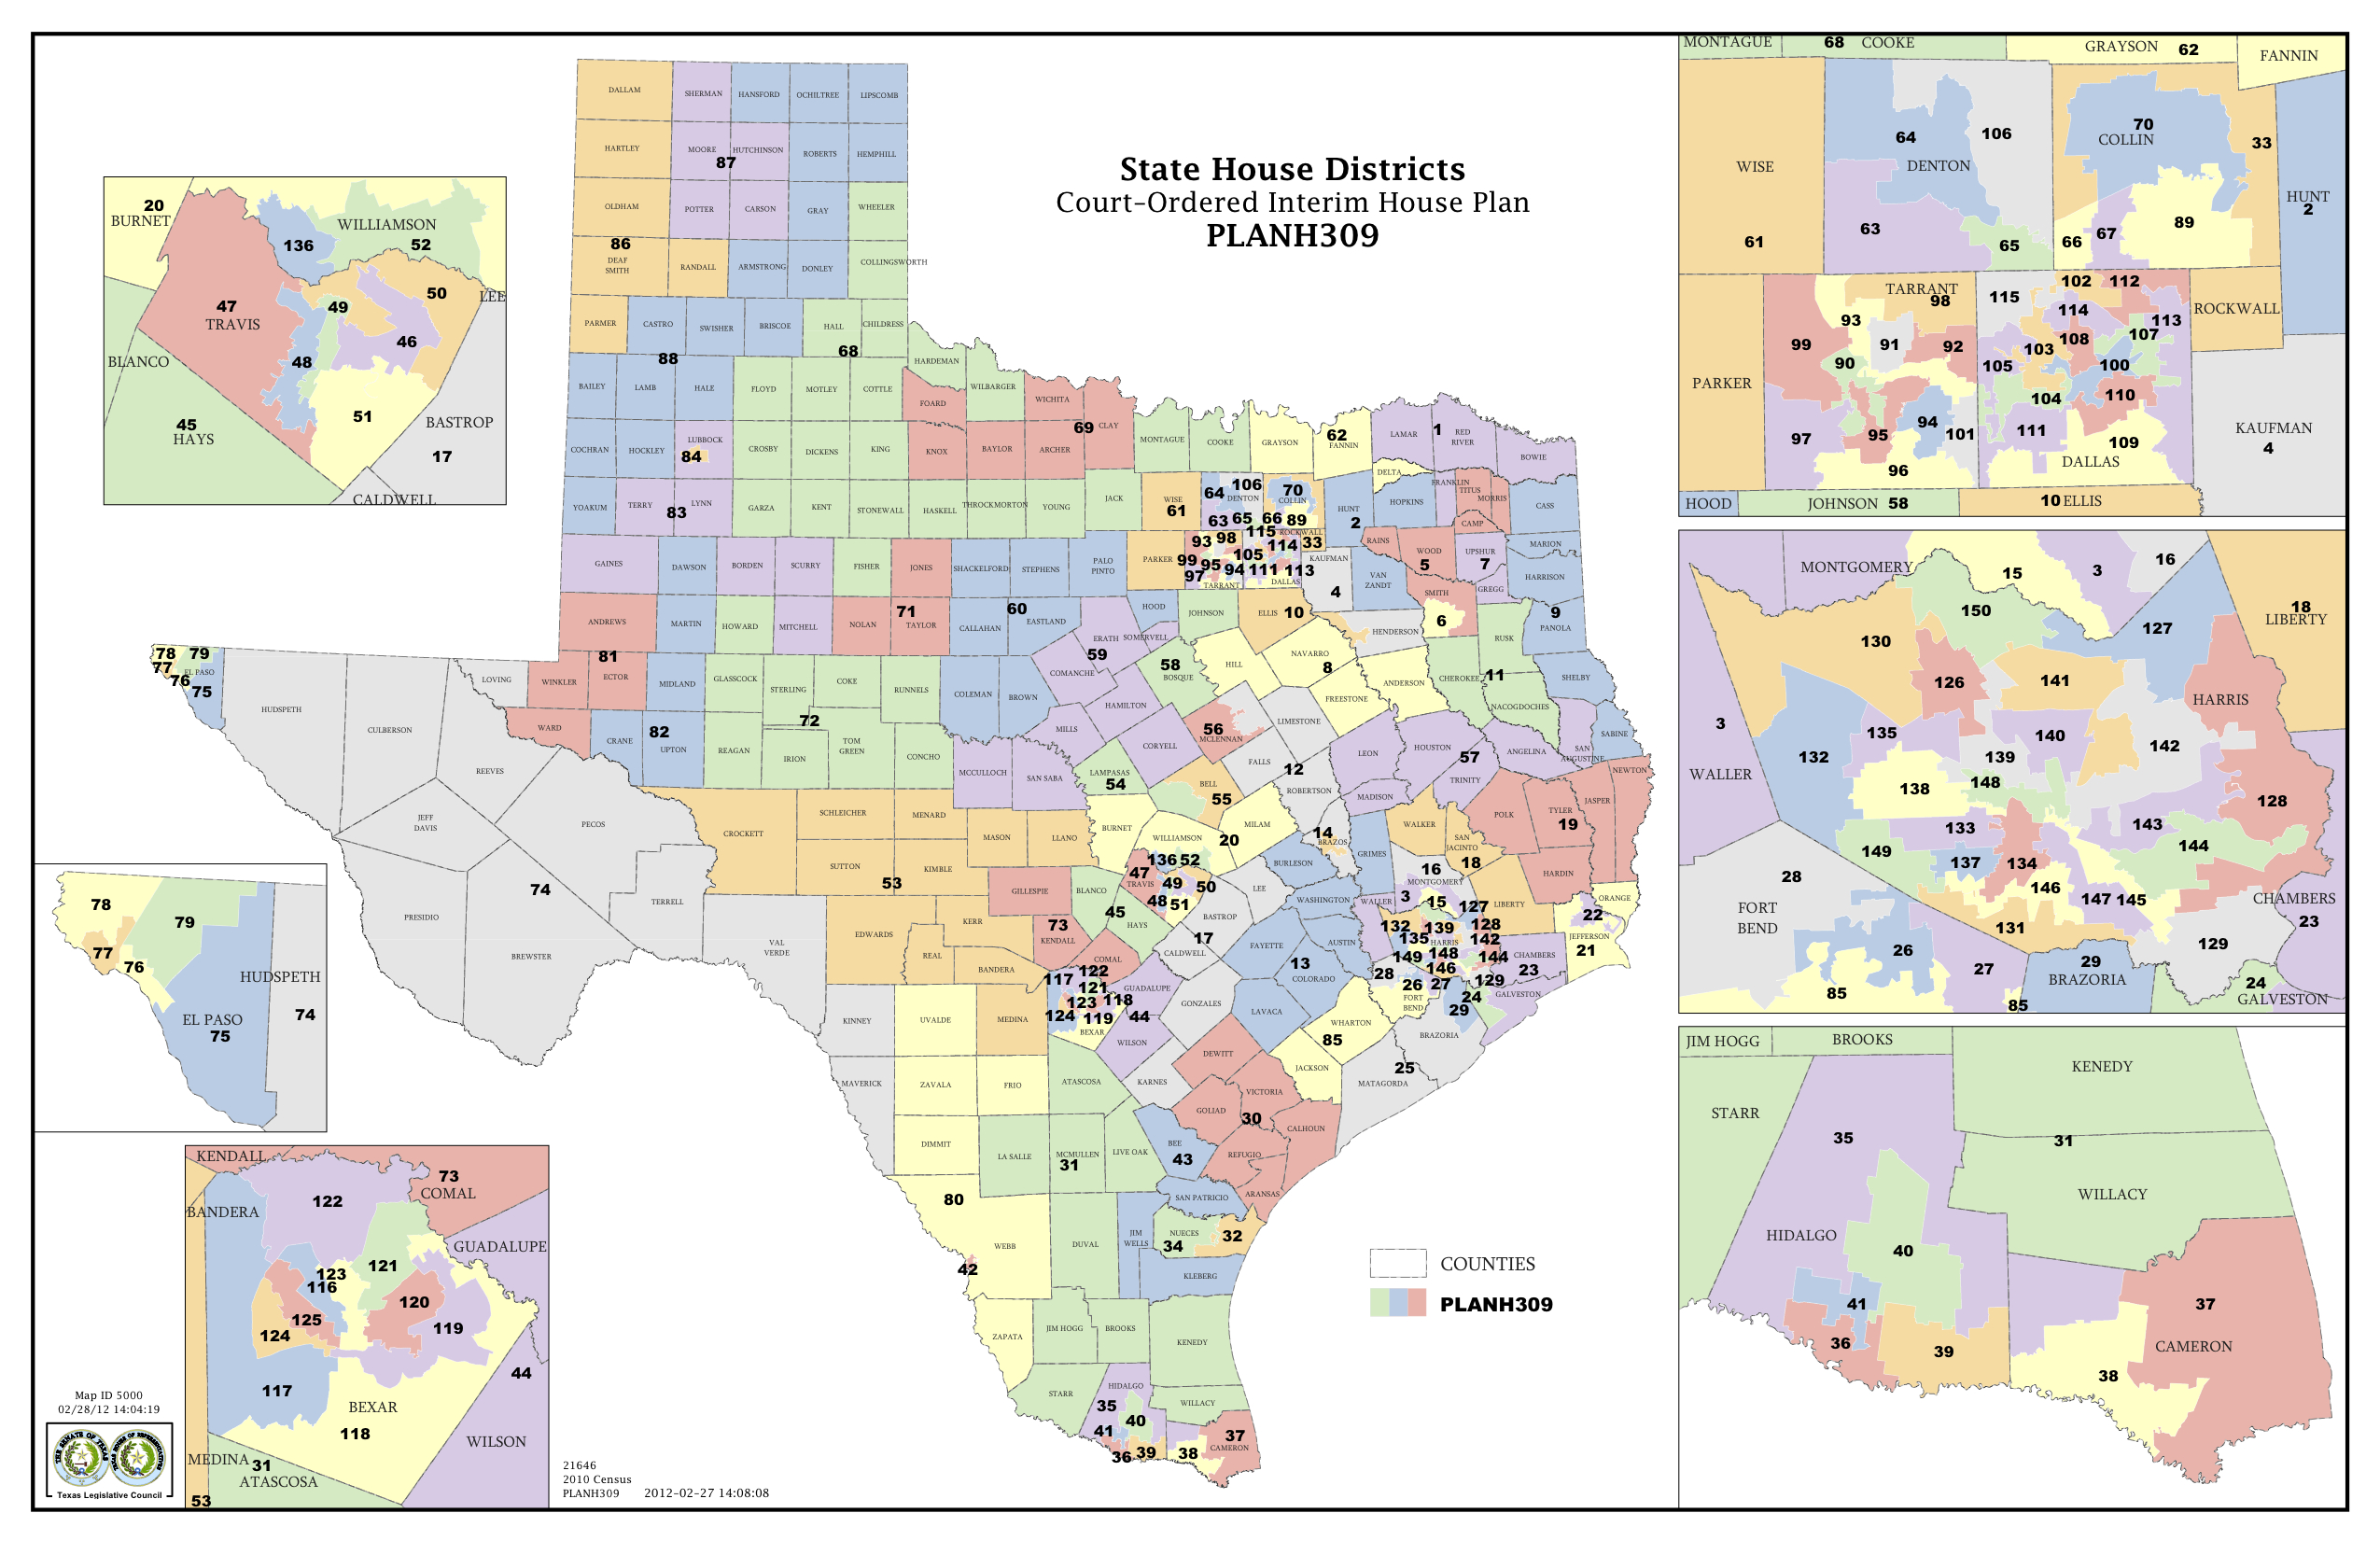 Texas House Districts Map | Business Ideas 2013 - Texas State Representatives Map